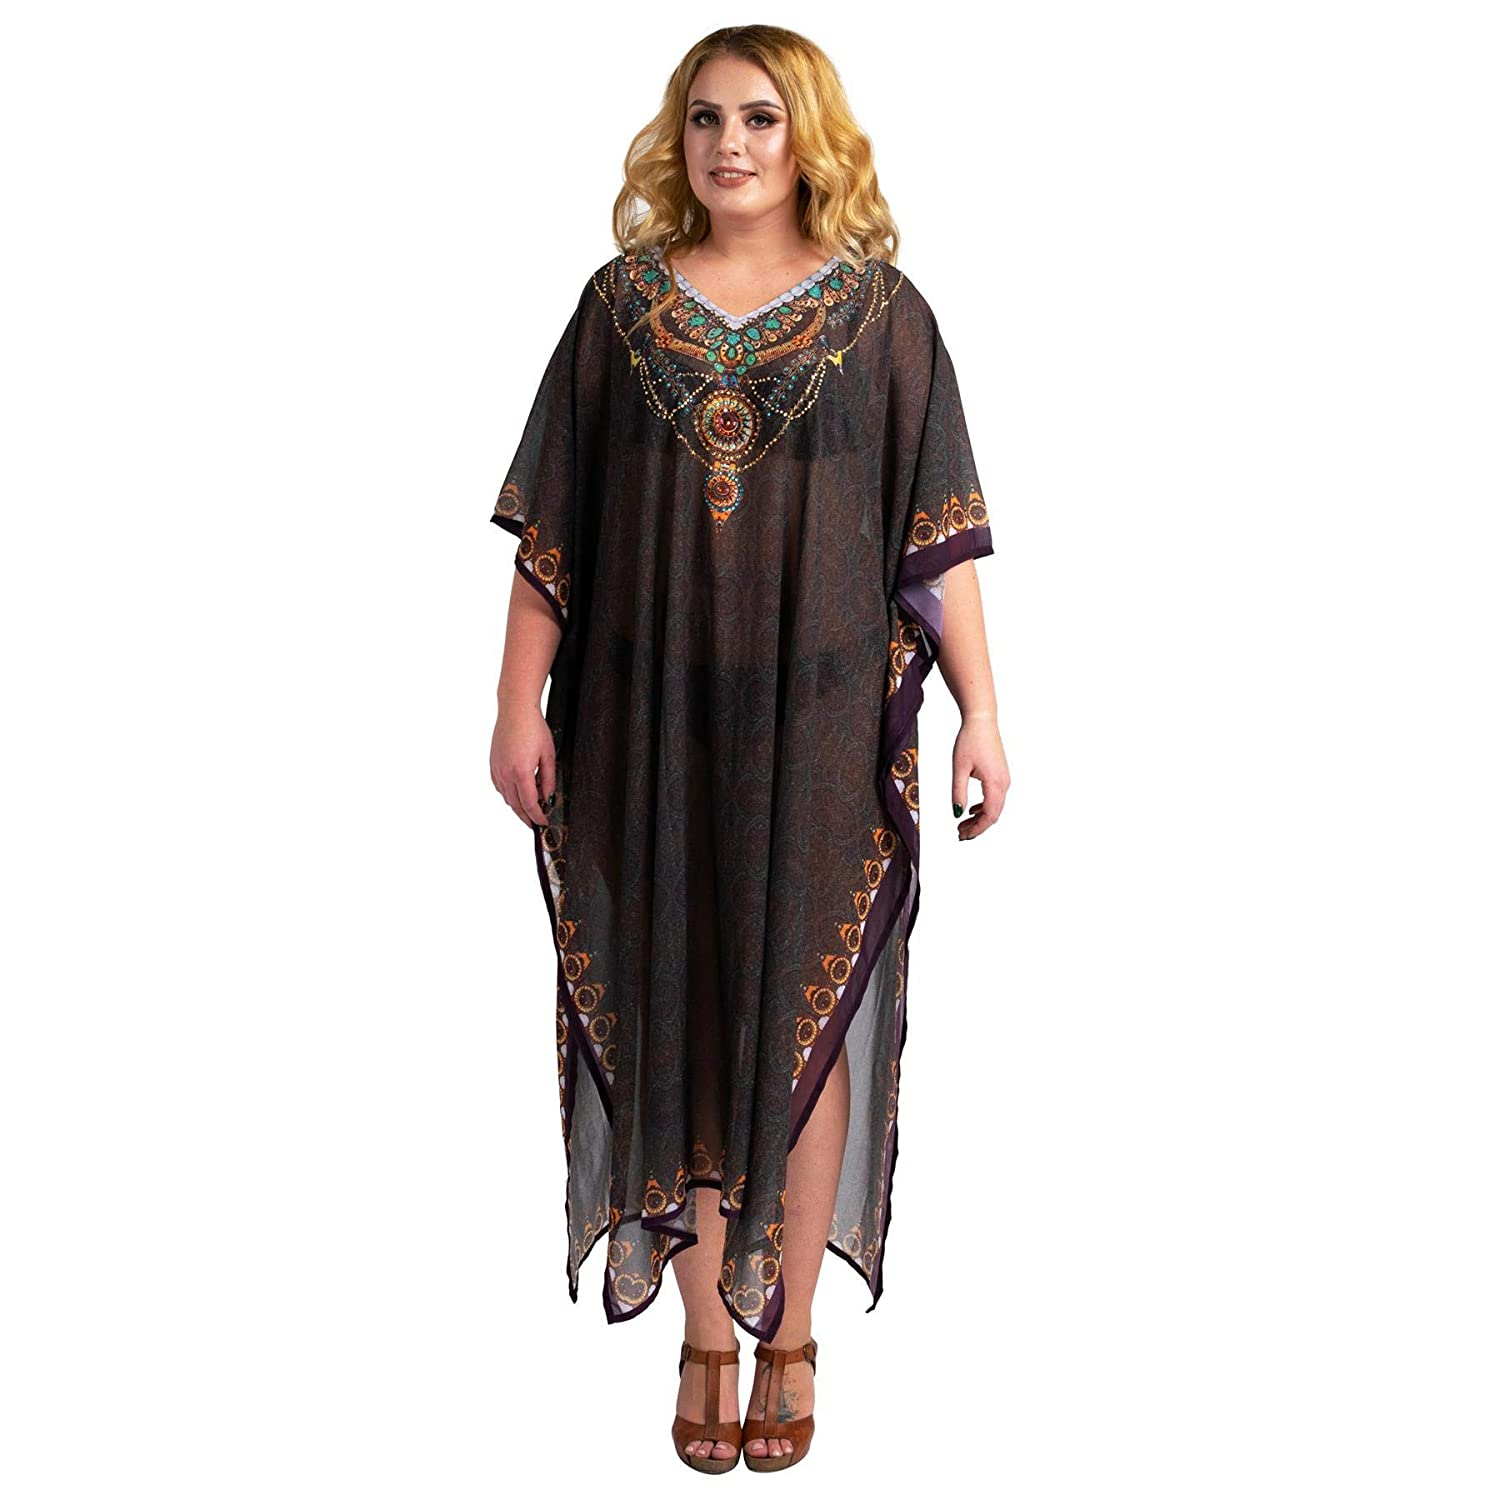 Black Flapper Dresses, 1920s Black Dresses Miss Lavish London Stonework and Hand Embroidered Kaftans Suiting Teens to Adult Women in Regular to Plus Size $17.99 AT vintagedancer.com